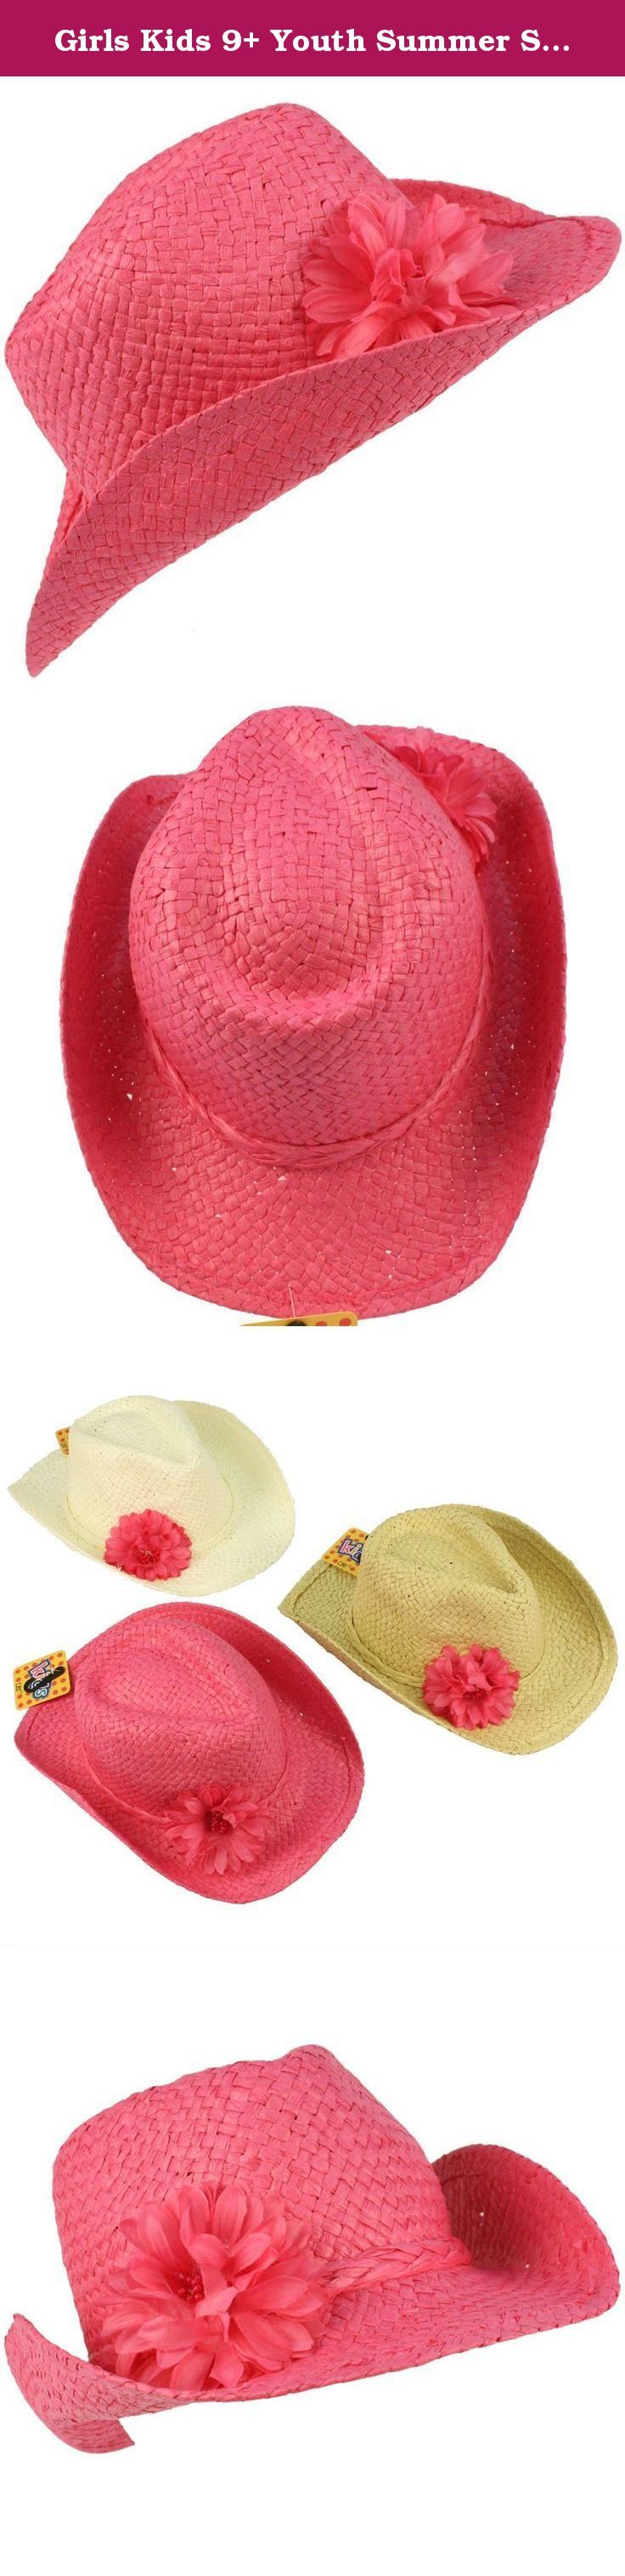 Girls Kids 9+ Youth Summer Sun Wire Brim Cowboy Flower Fedora Hat 55cm Pink. New Kids Girls Child Summer Spring Shapeable Wire Brim Light Weight Cowboy Fedora Sun Beach Hat Cap with Ruffle flower with embellishments and braided hatband. You can shape the hat to your liking, or their liking. Perfect for hot weather to keep harmful sun and UV rays out of their face. Start them early on a sun protection regimen. Or even a formal affair like weddings, Kentucky derby, how about a picnic, a...